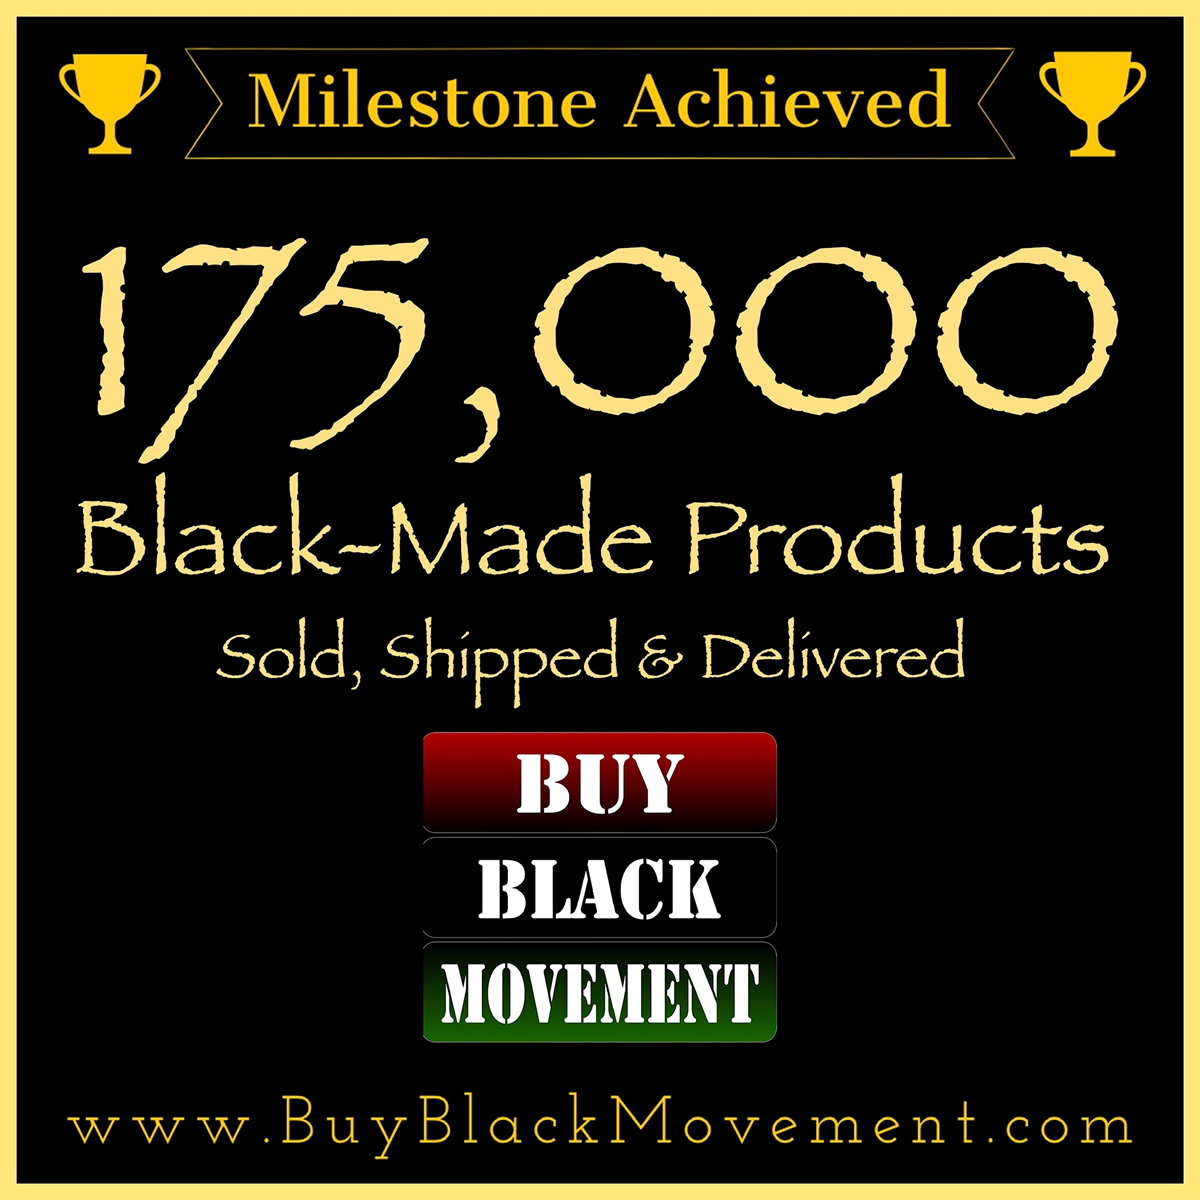 175,000 Products Sold